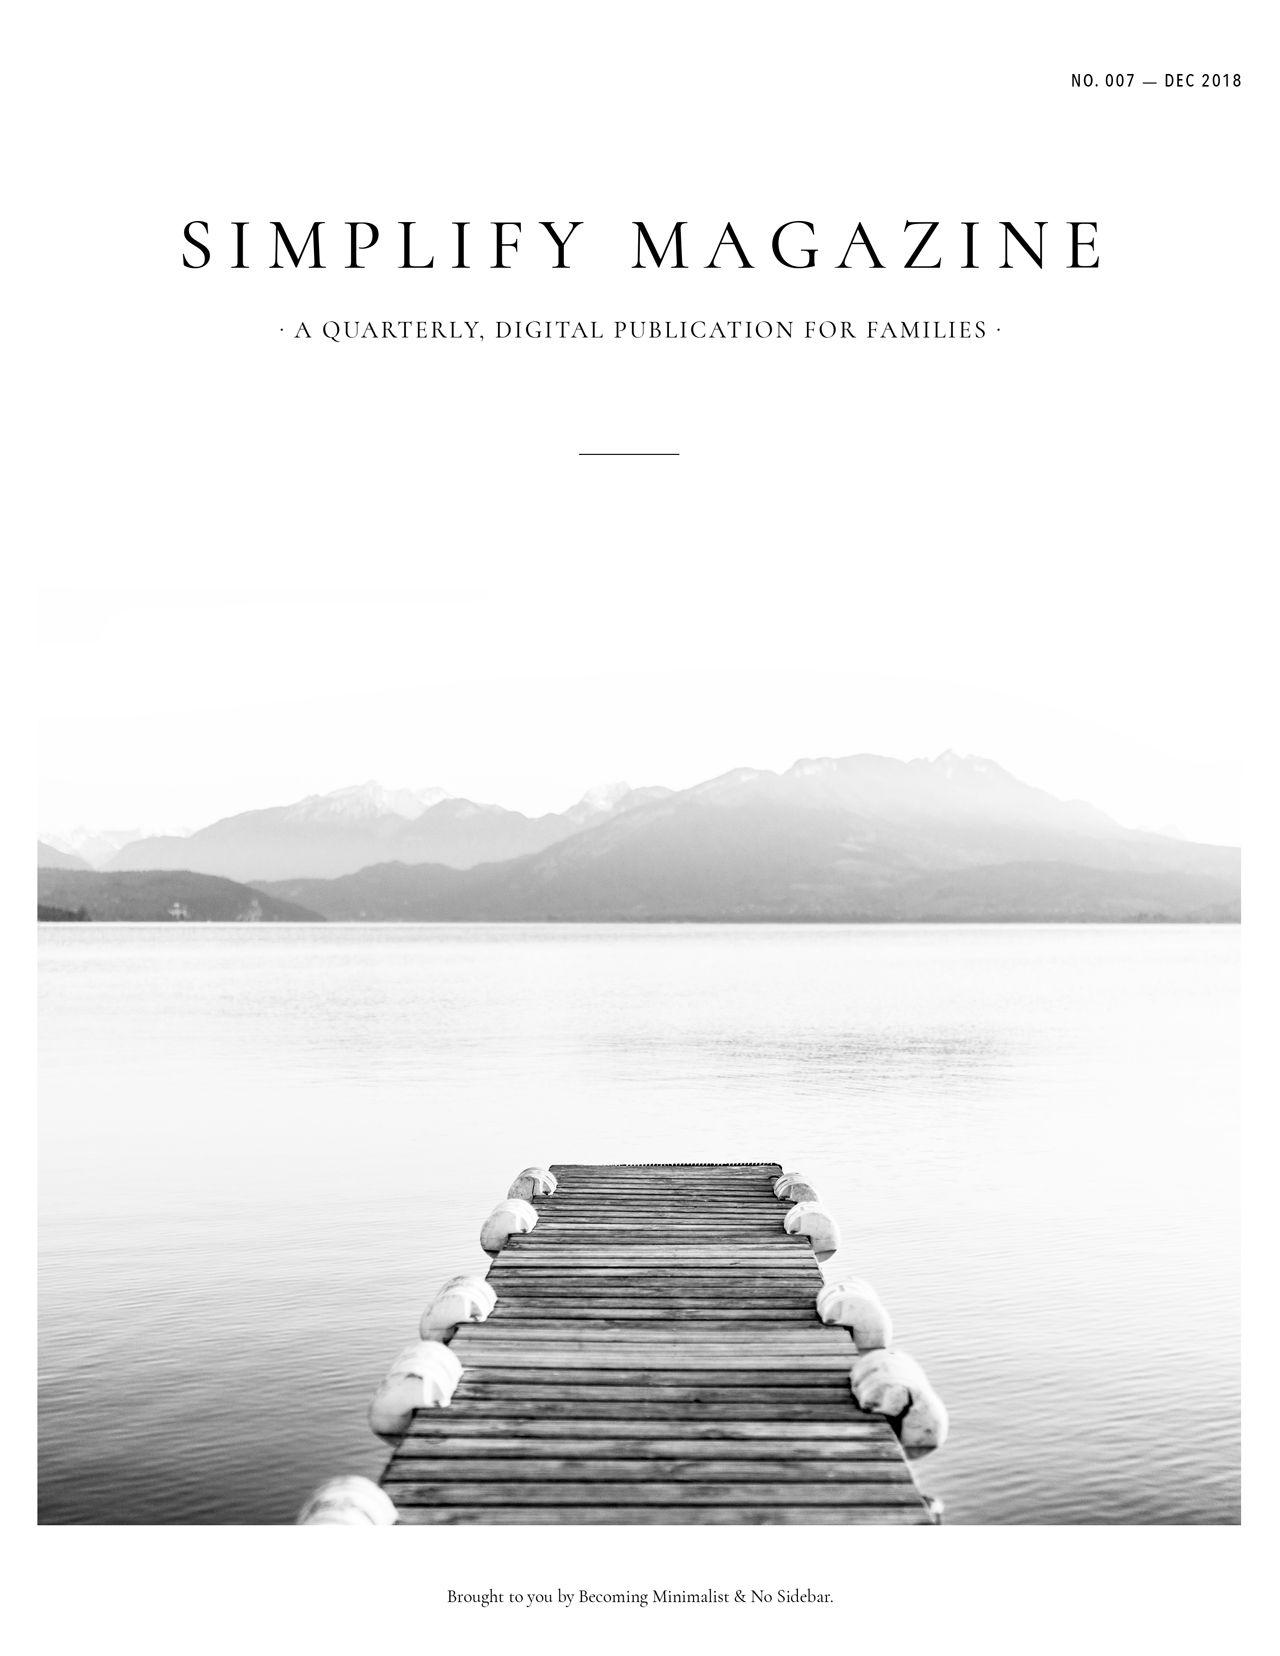 Simplify Magazine Issue #007